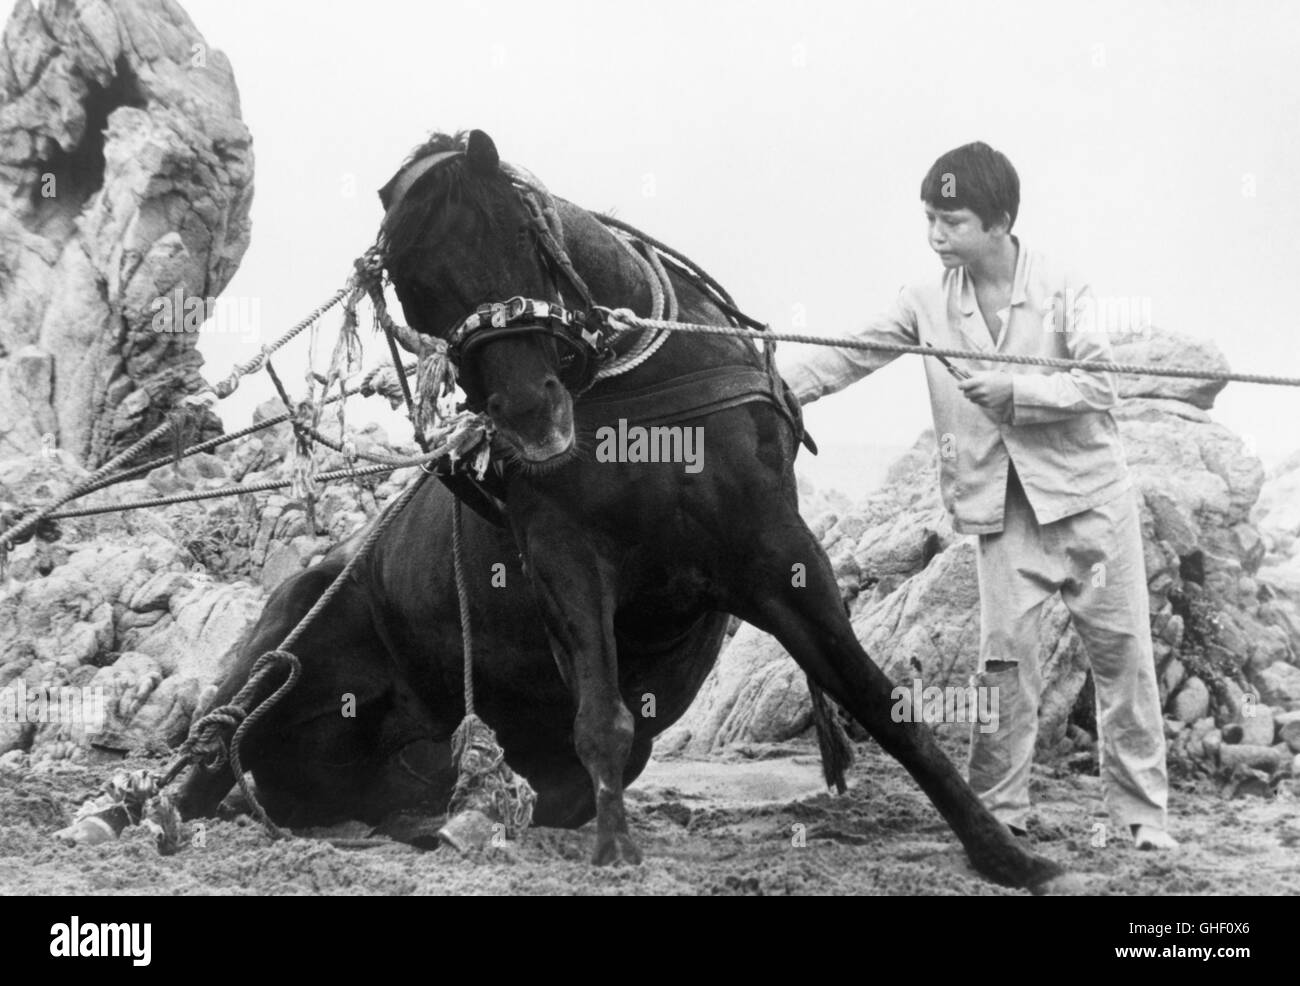 THE BLACK STALLION USA 1979 Carroll Ballard Alec Ramsey (KELLY RENO) whose life was saved by a horse in a shipwreck, Stock Photo